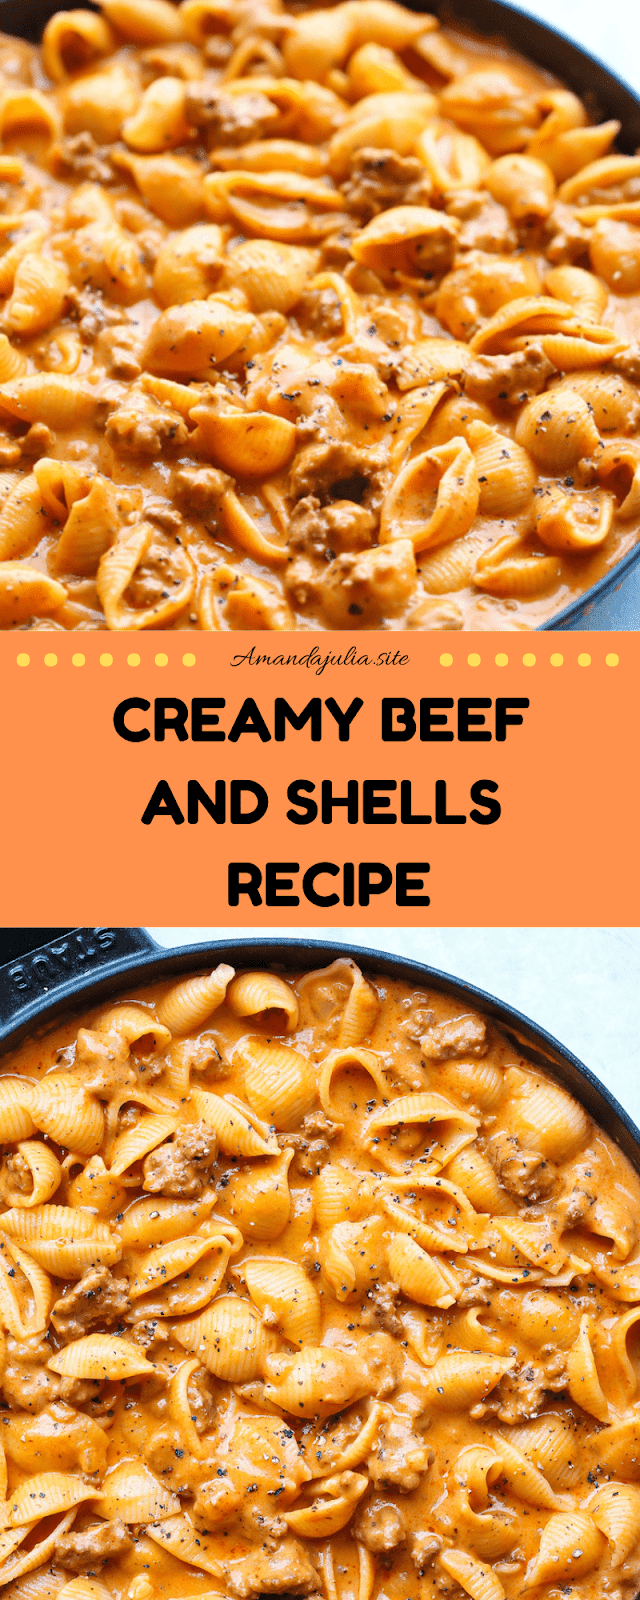 Creamy Beef and Shells Recipe images